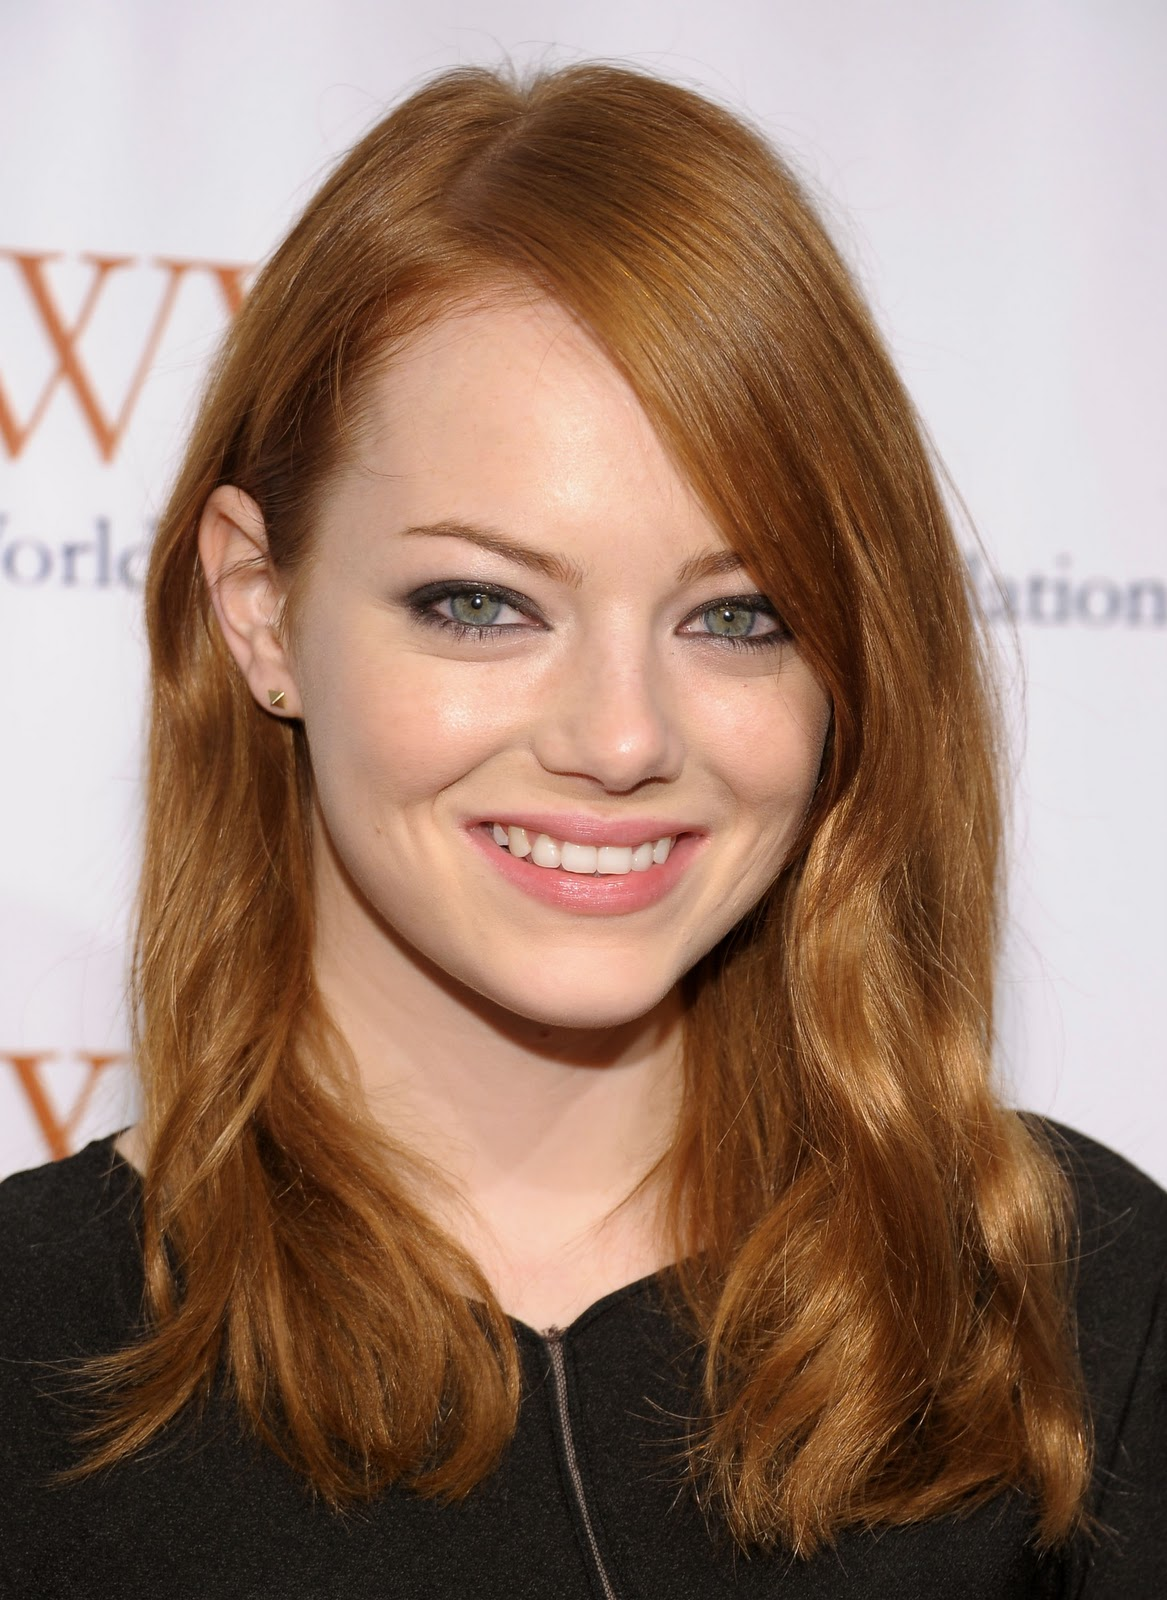 http://4.bp.blogspot.com/-19Ok5u0iezQ/TsKv0PG5CFI/AAAAAAAAEhk/d6Y4-MRhIKQ/s1600/Emma+Stone+%2540+Worldwide+Orphans+Foundation+Benefit+in+New+York+City+-+November+14%252C+2011+%25284%2529.jpg